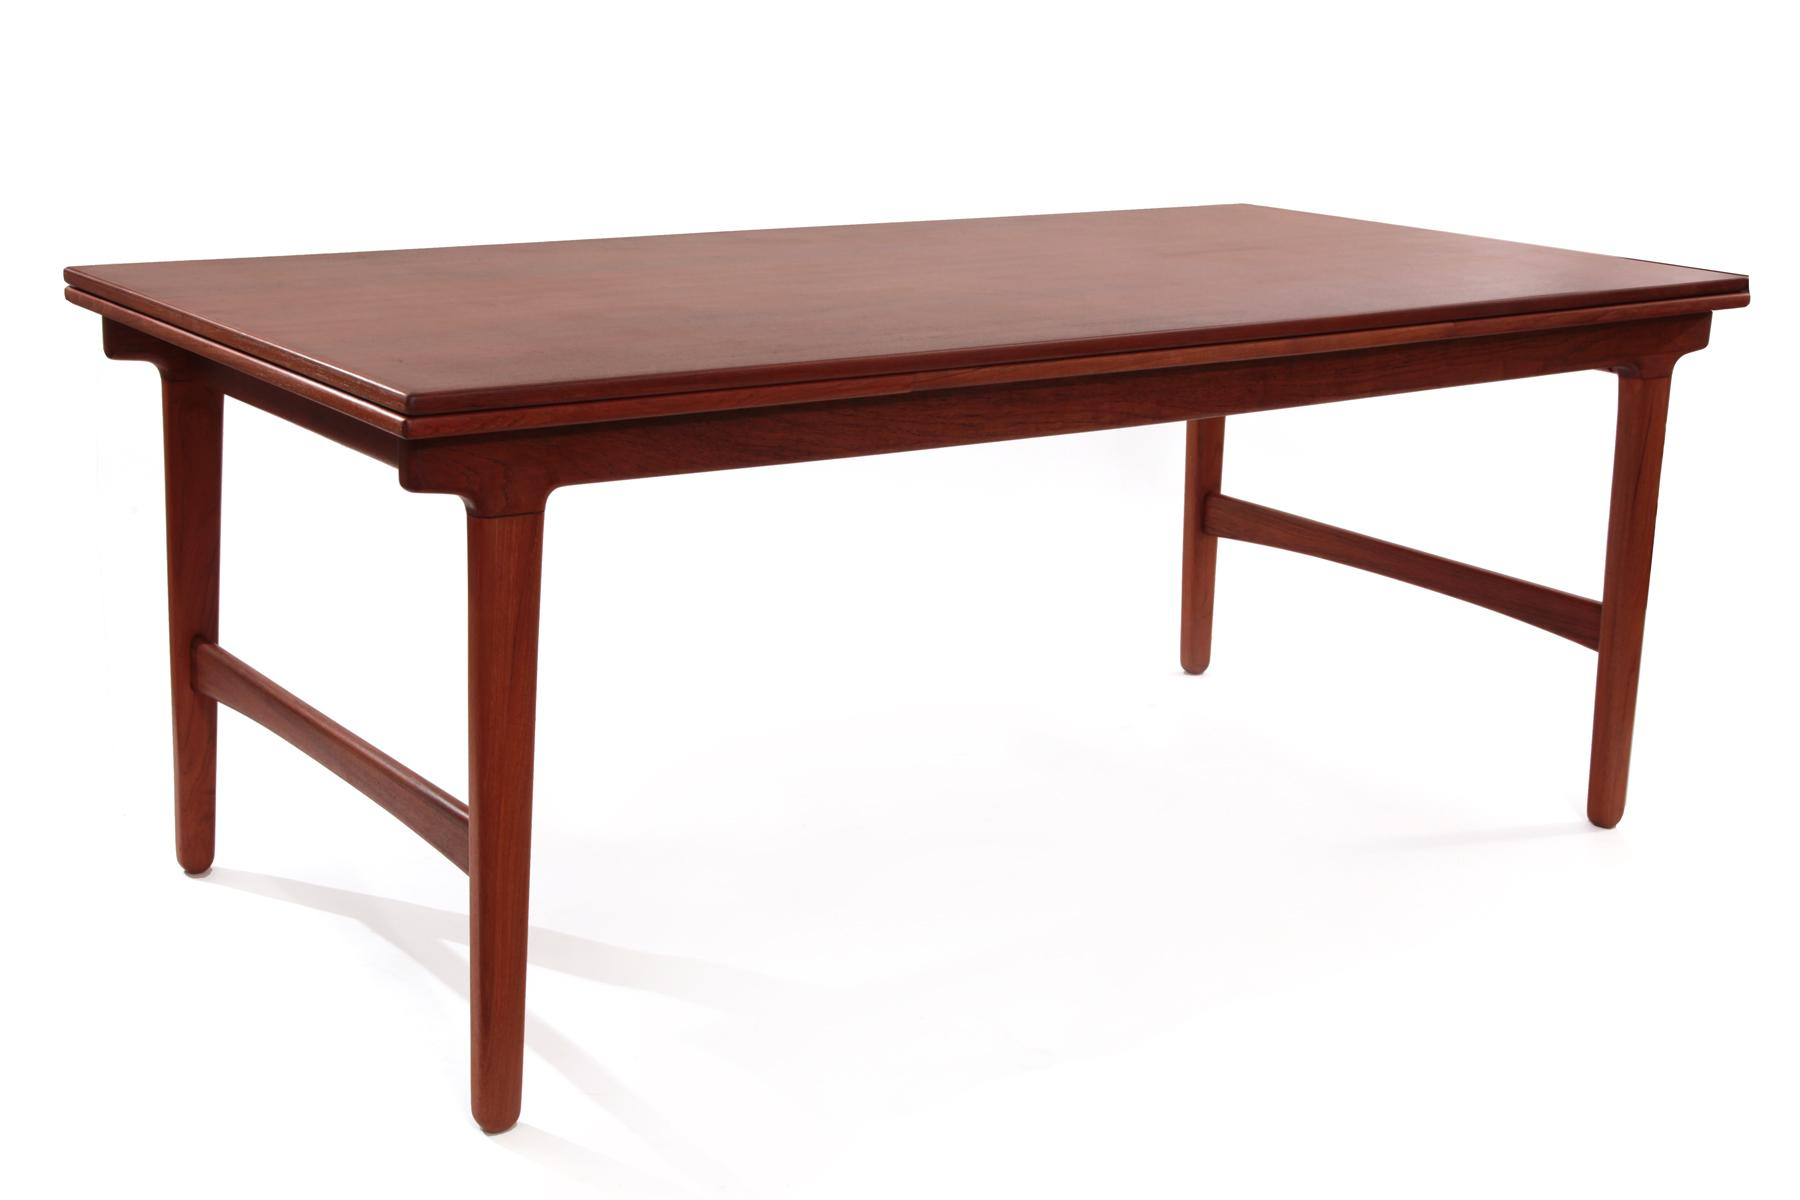 Rare hans wegner a p stolen dining table chairish for Table th 00 02